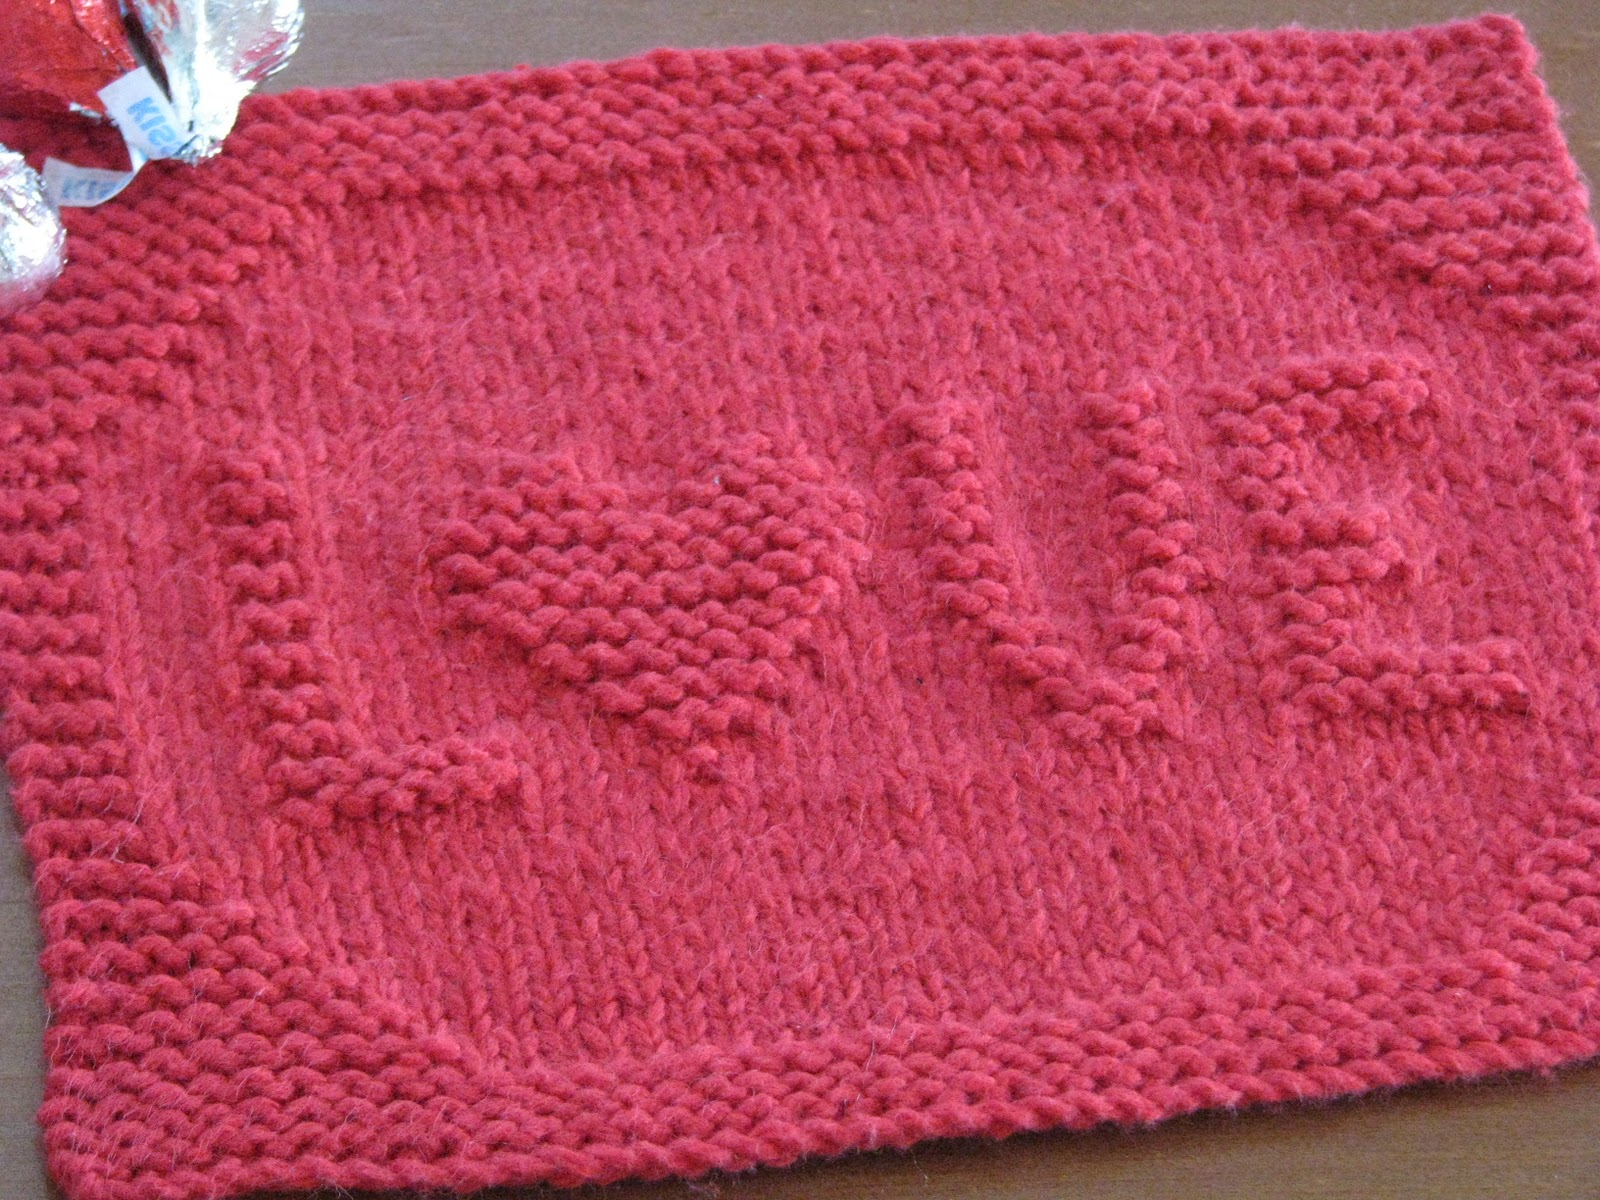 Dish Cloth Knitting Pattern : One Crafty Mama: LOVE Dishcloth